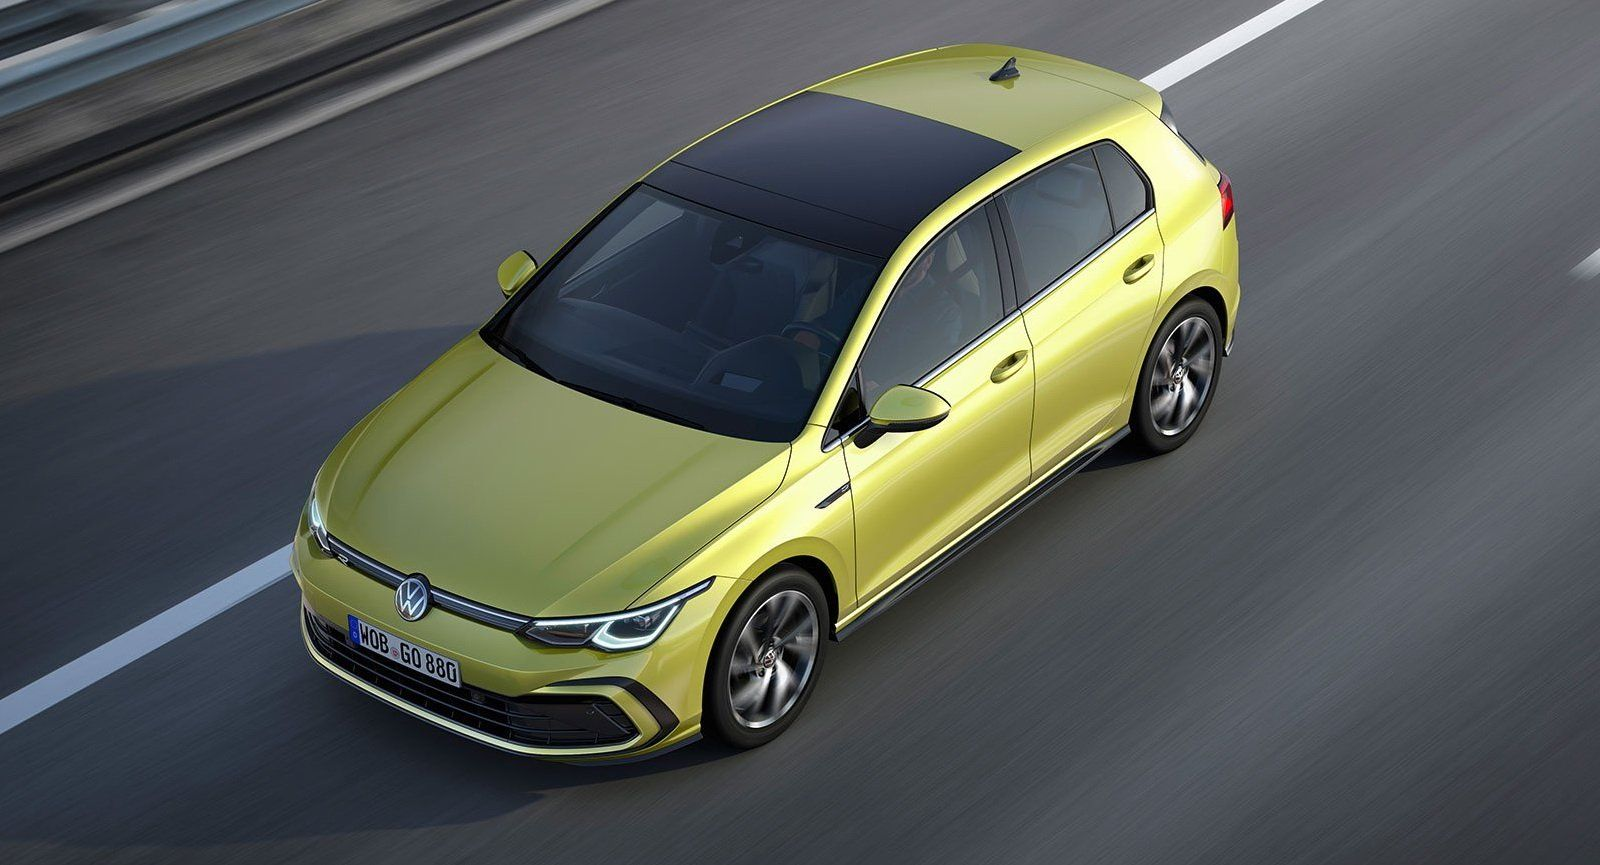 Watch 2020 Vw Golf Mk8 S Live Reveal Here And See All The Pictures While You Re Waiting Liveevents Newcars Vi Volkswagen Golf Volkswagen Volkswagen Passat